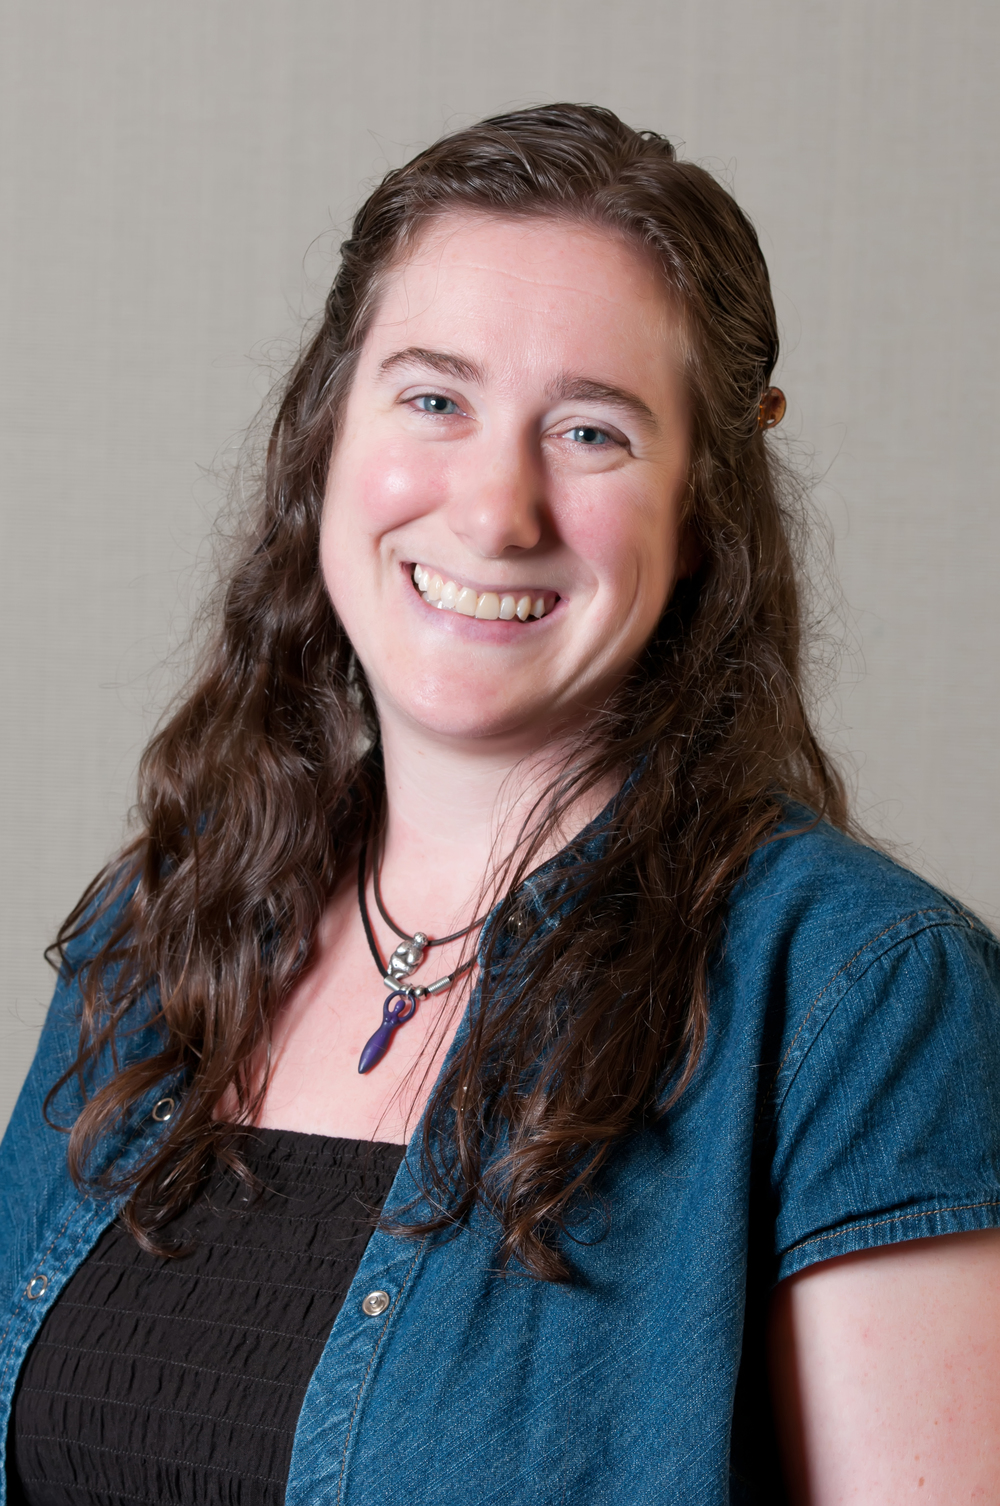 Jodi Spriggs is an art teacher at Battle School.   mailto:JSpriggs@CPSk12.org  573-214-3300